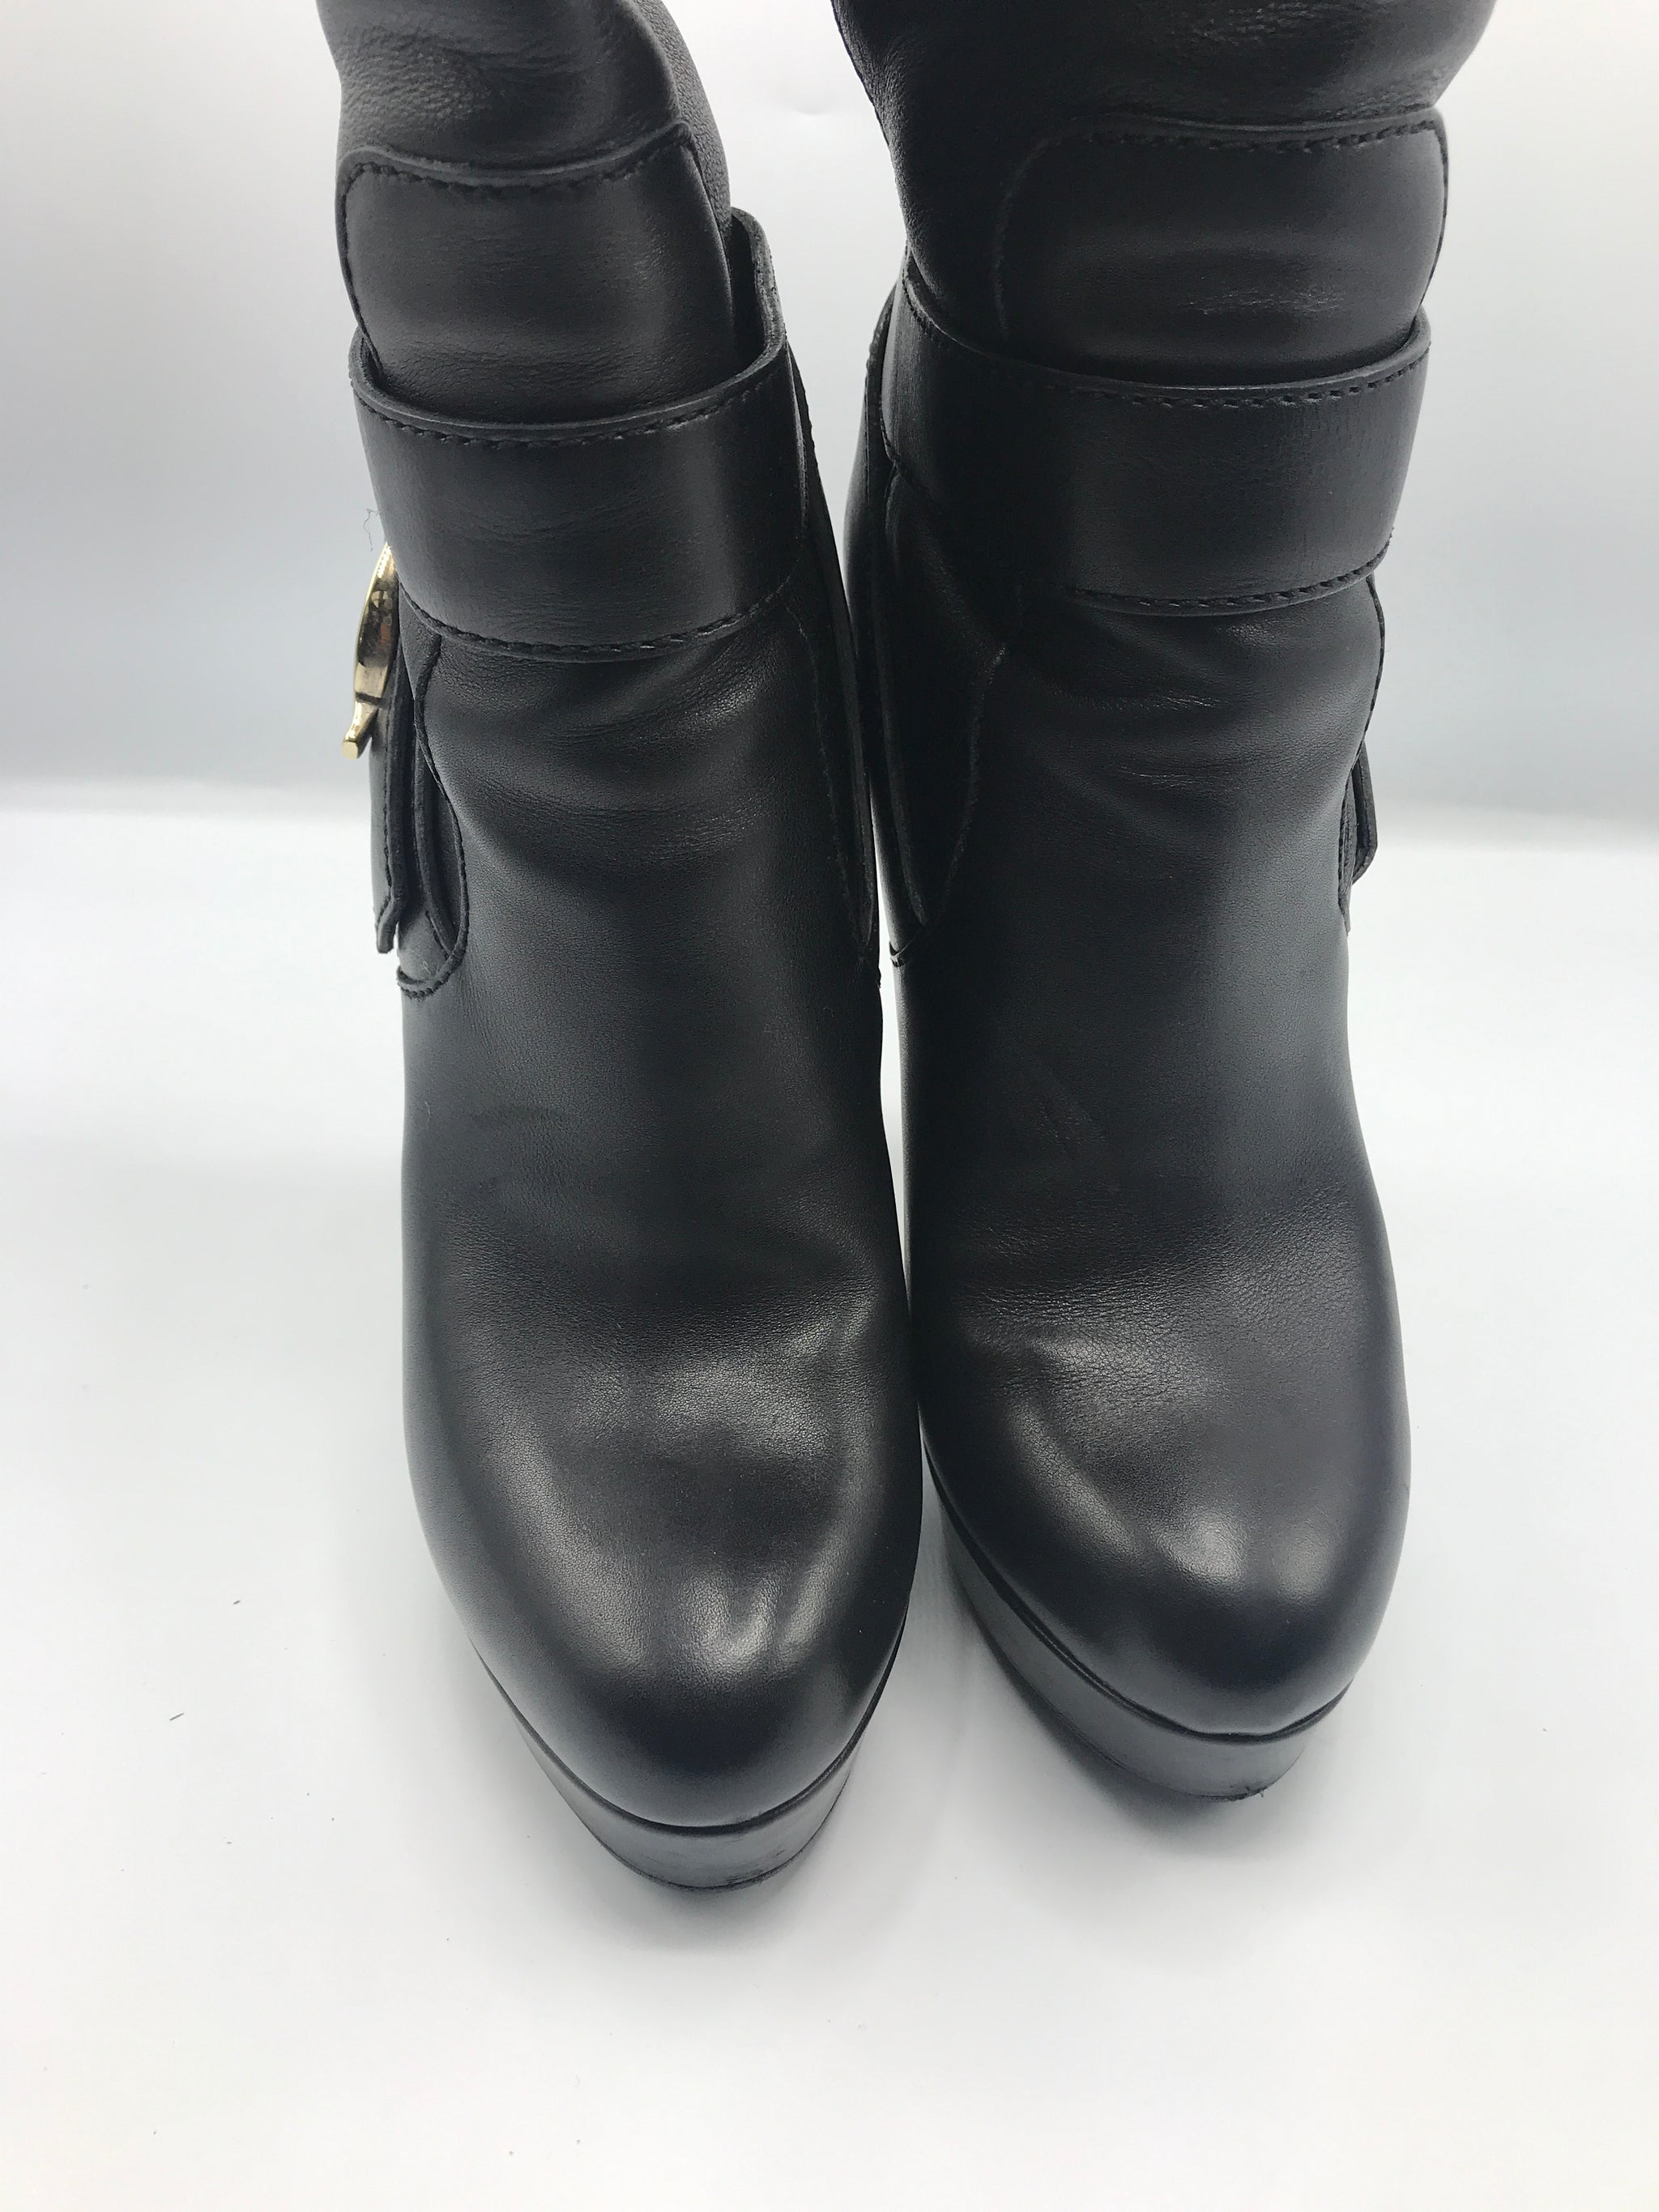 Guccci boots - Iconics Preloved Luxury